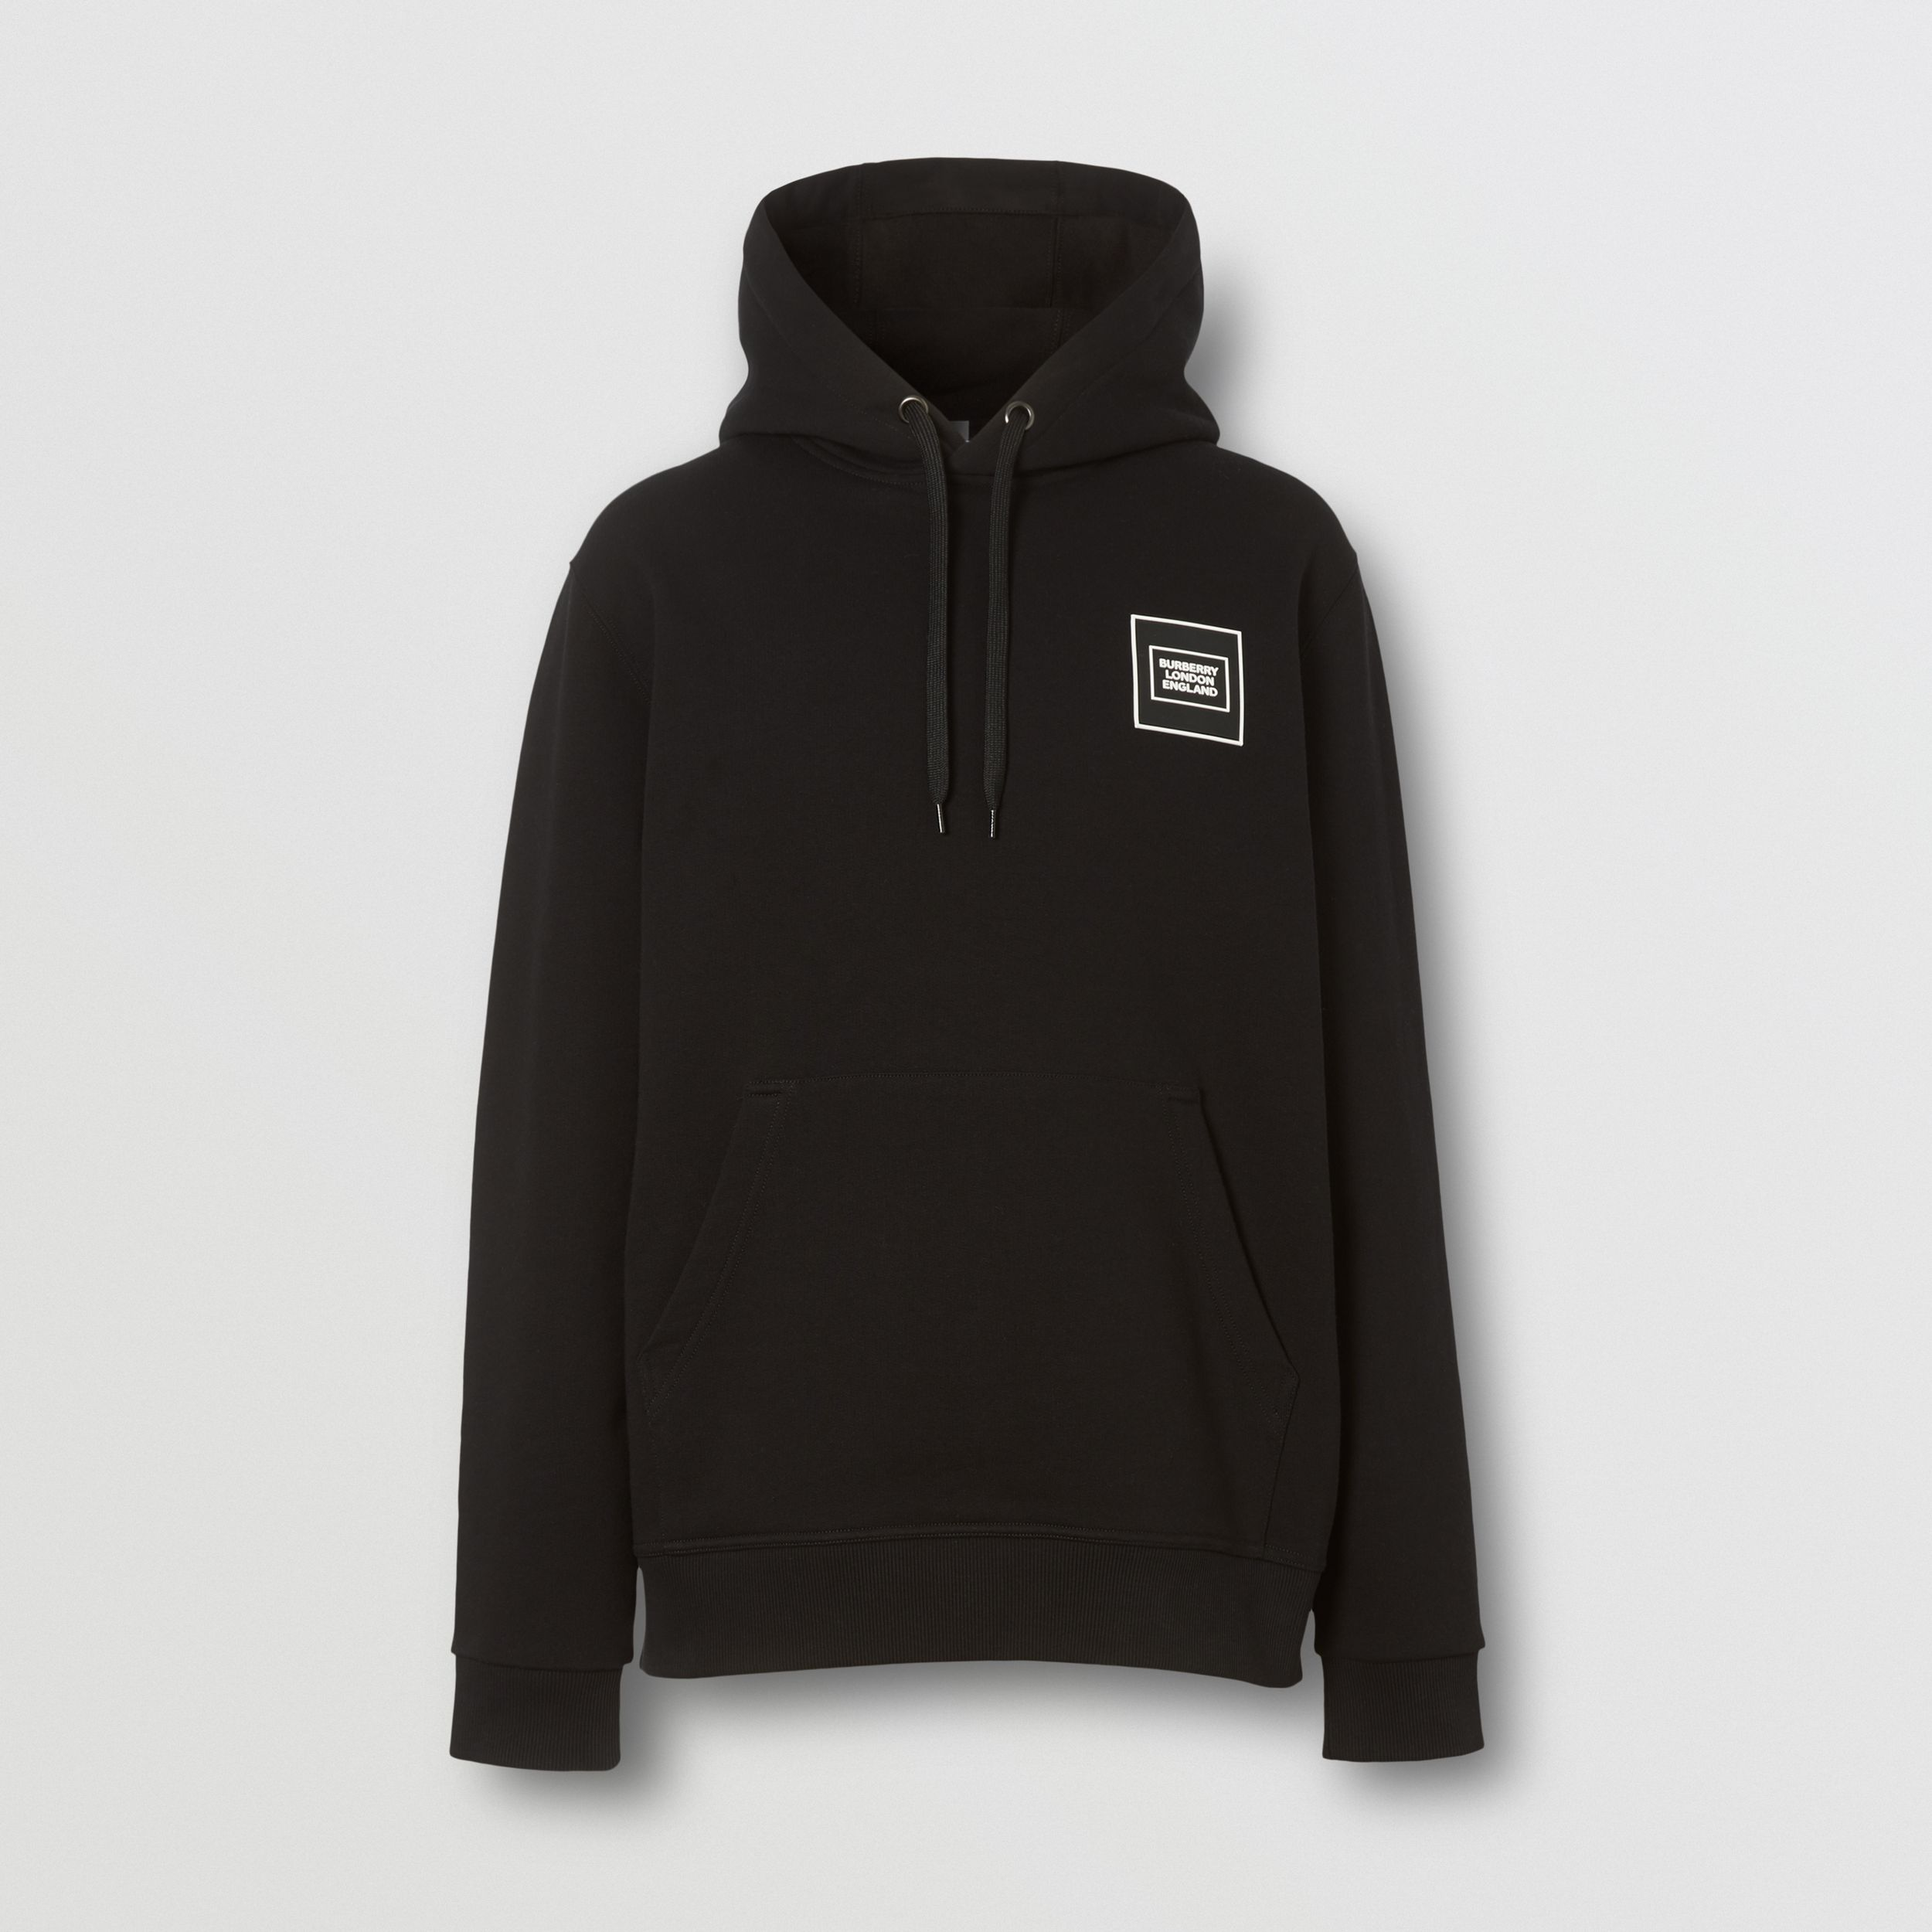 Logo Appliqué Cotton Hoodie in Black - Men | Burberry - 4